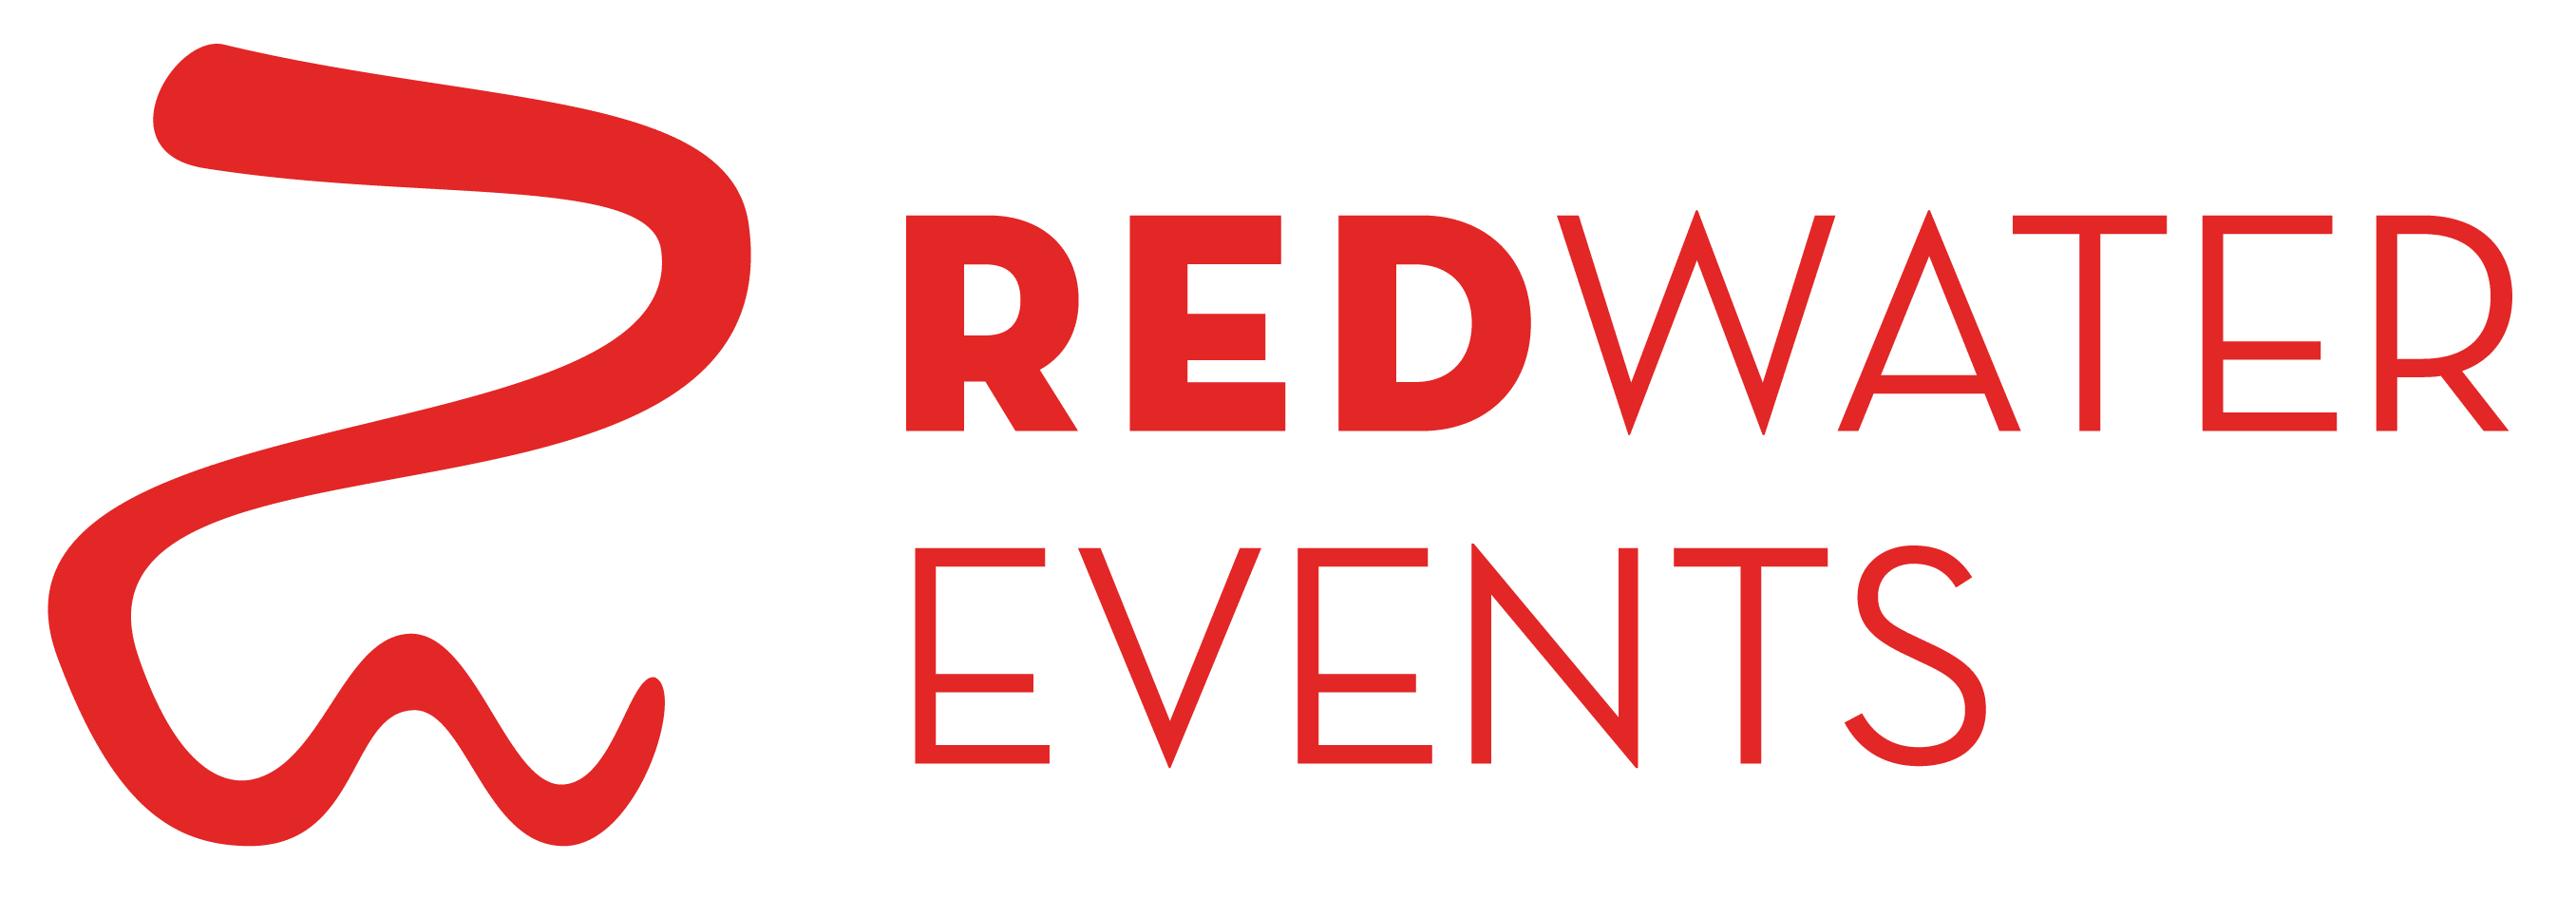 redwater events